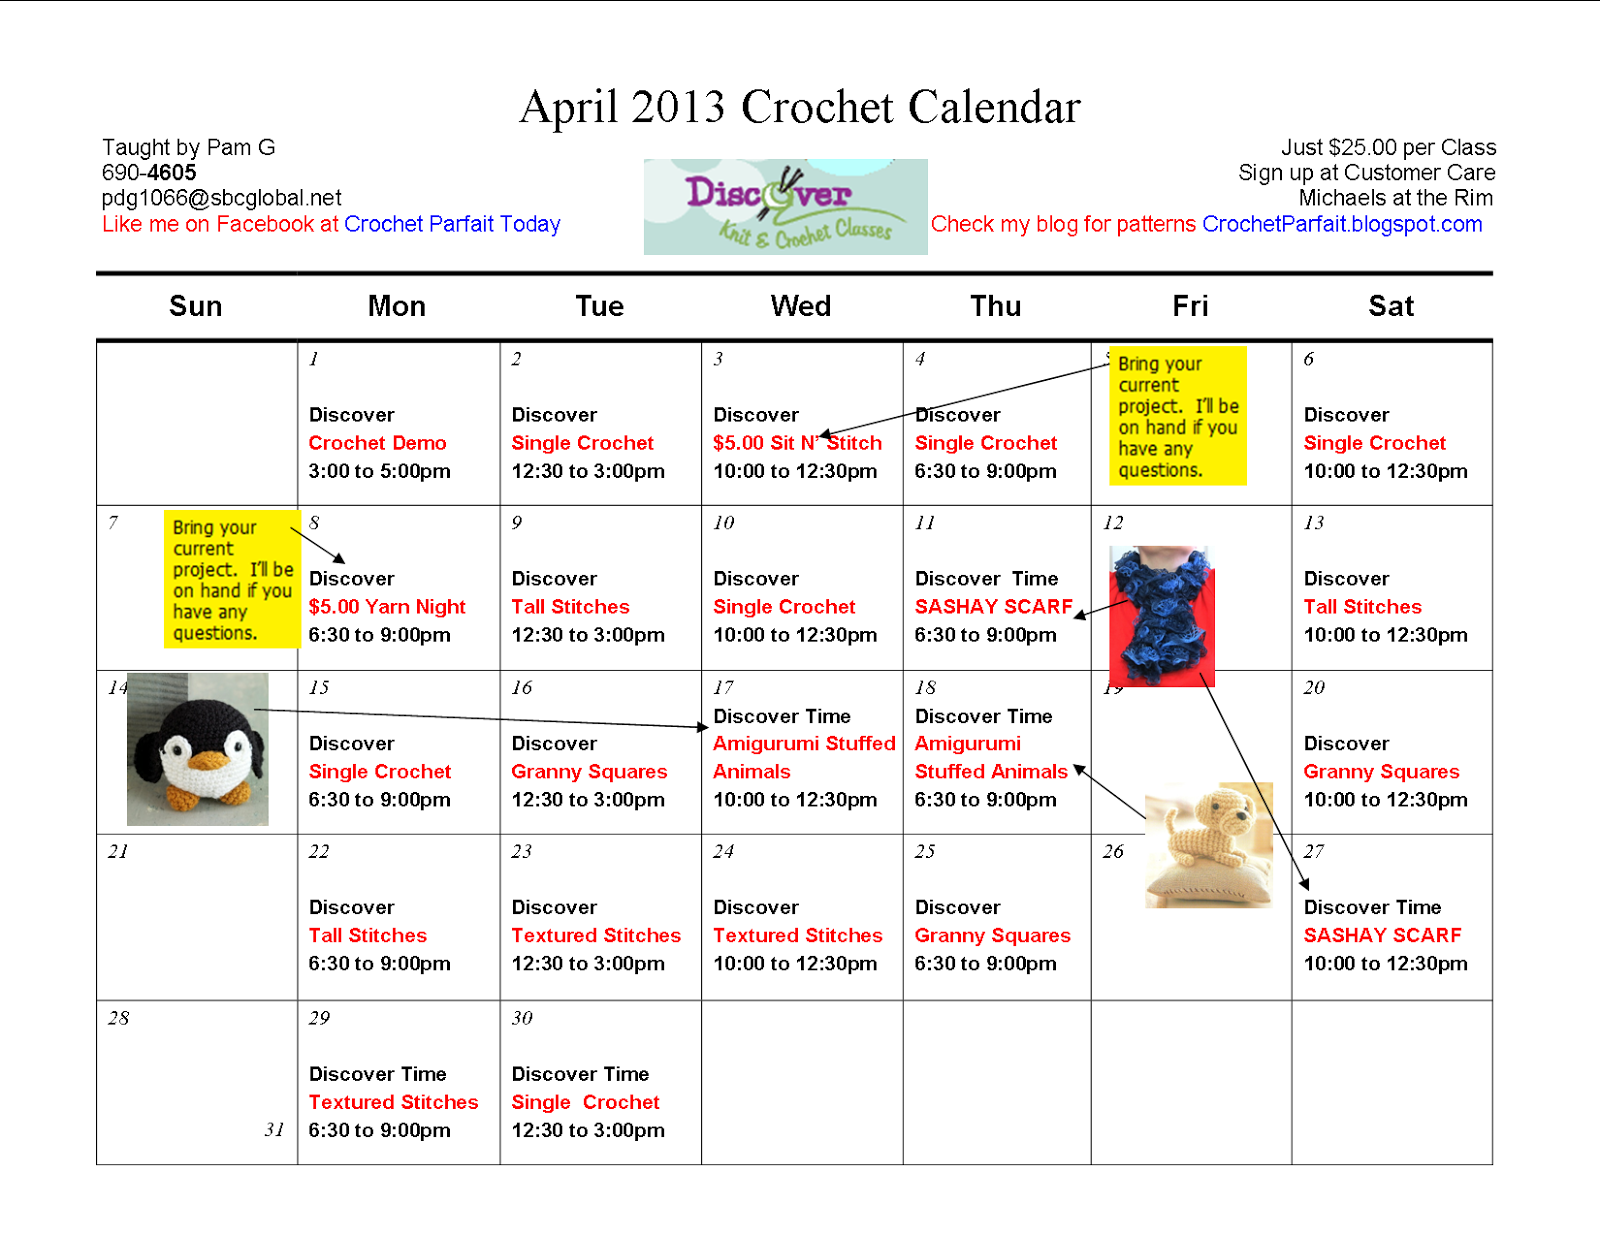 Crocheting Classes At Michaels : Crochet Parfait: April 2013 Crochet Class Calendar